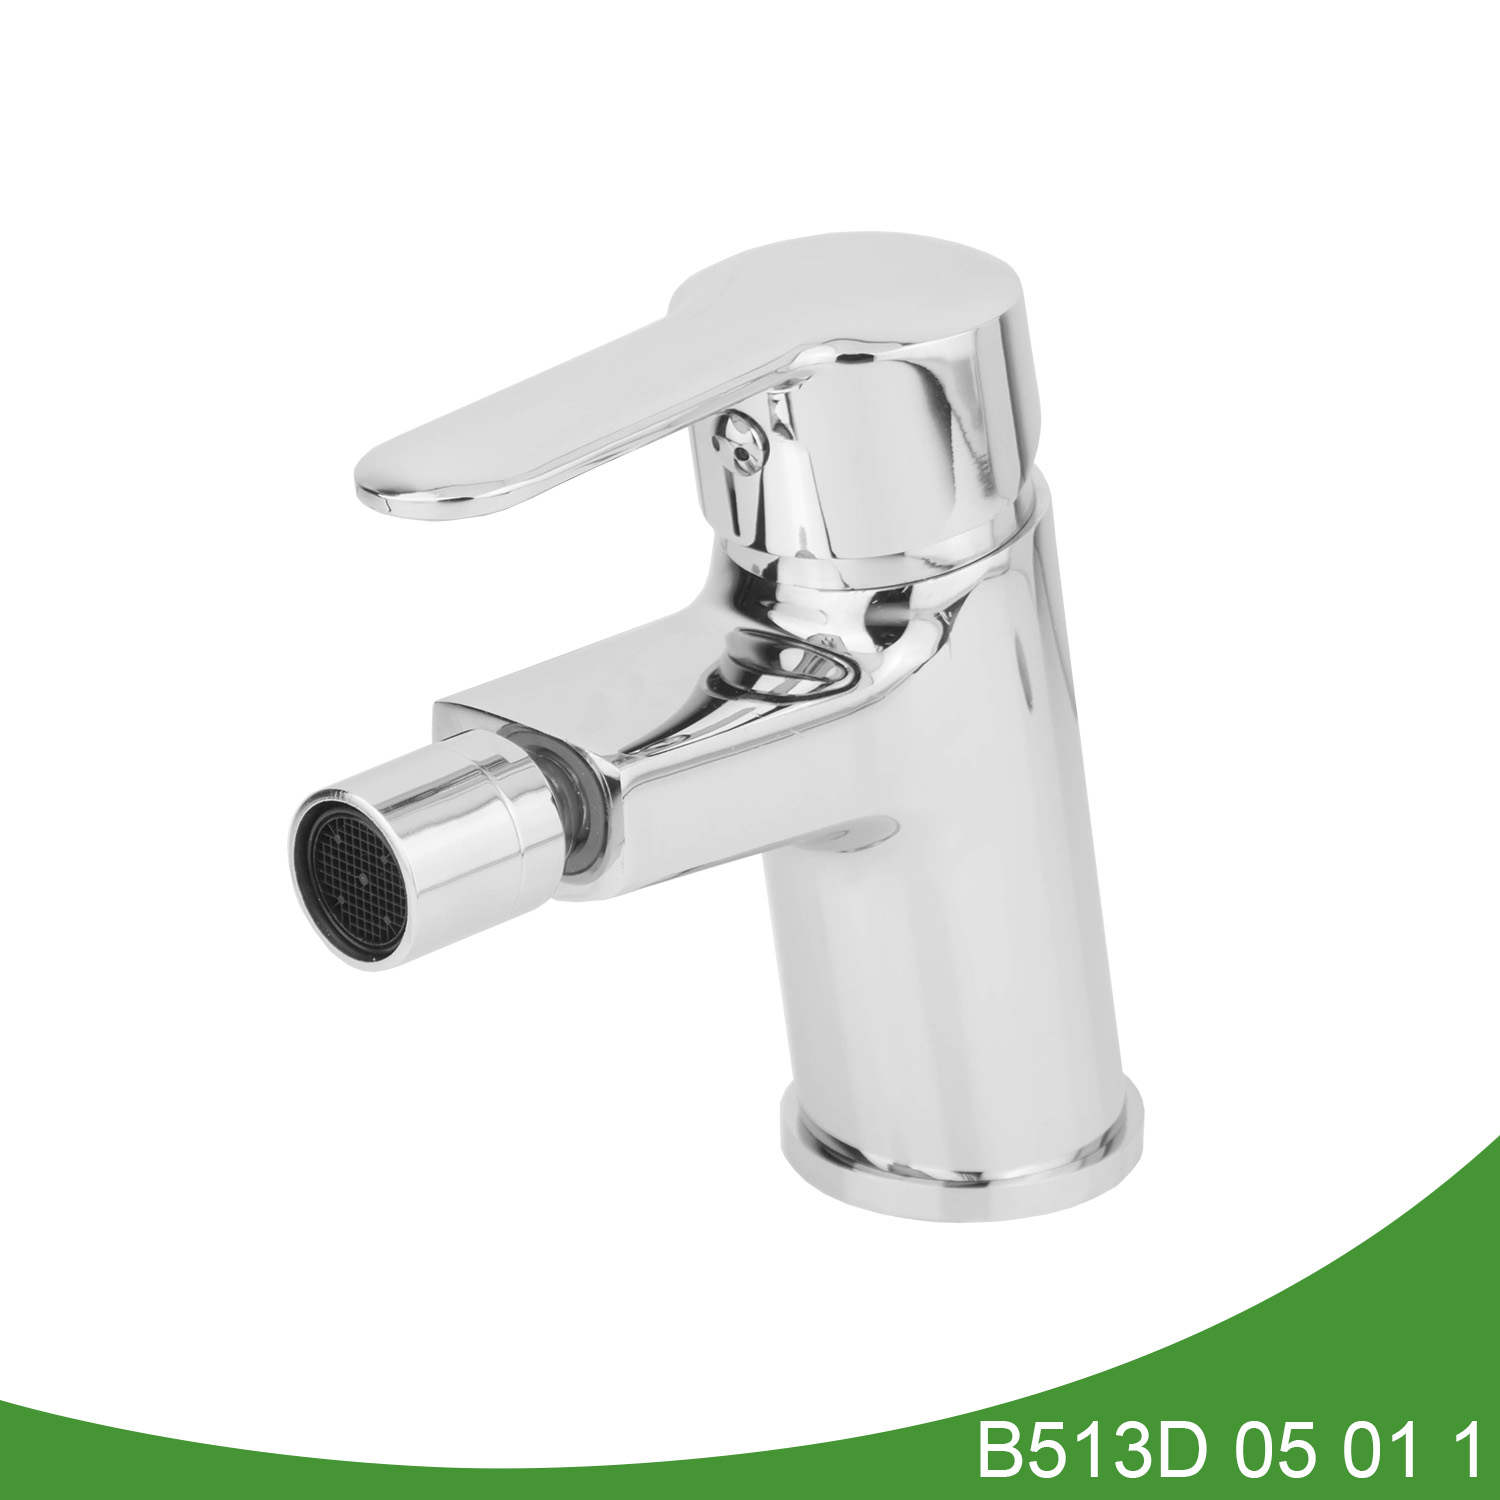 Single handle bidet tap B513D 05 01 1